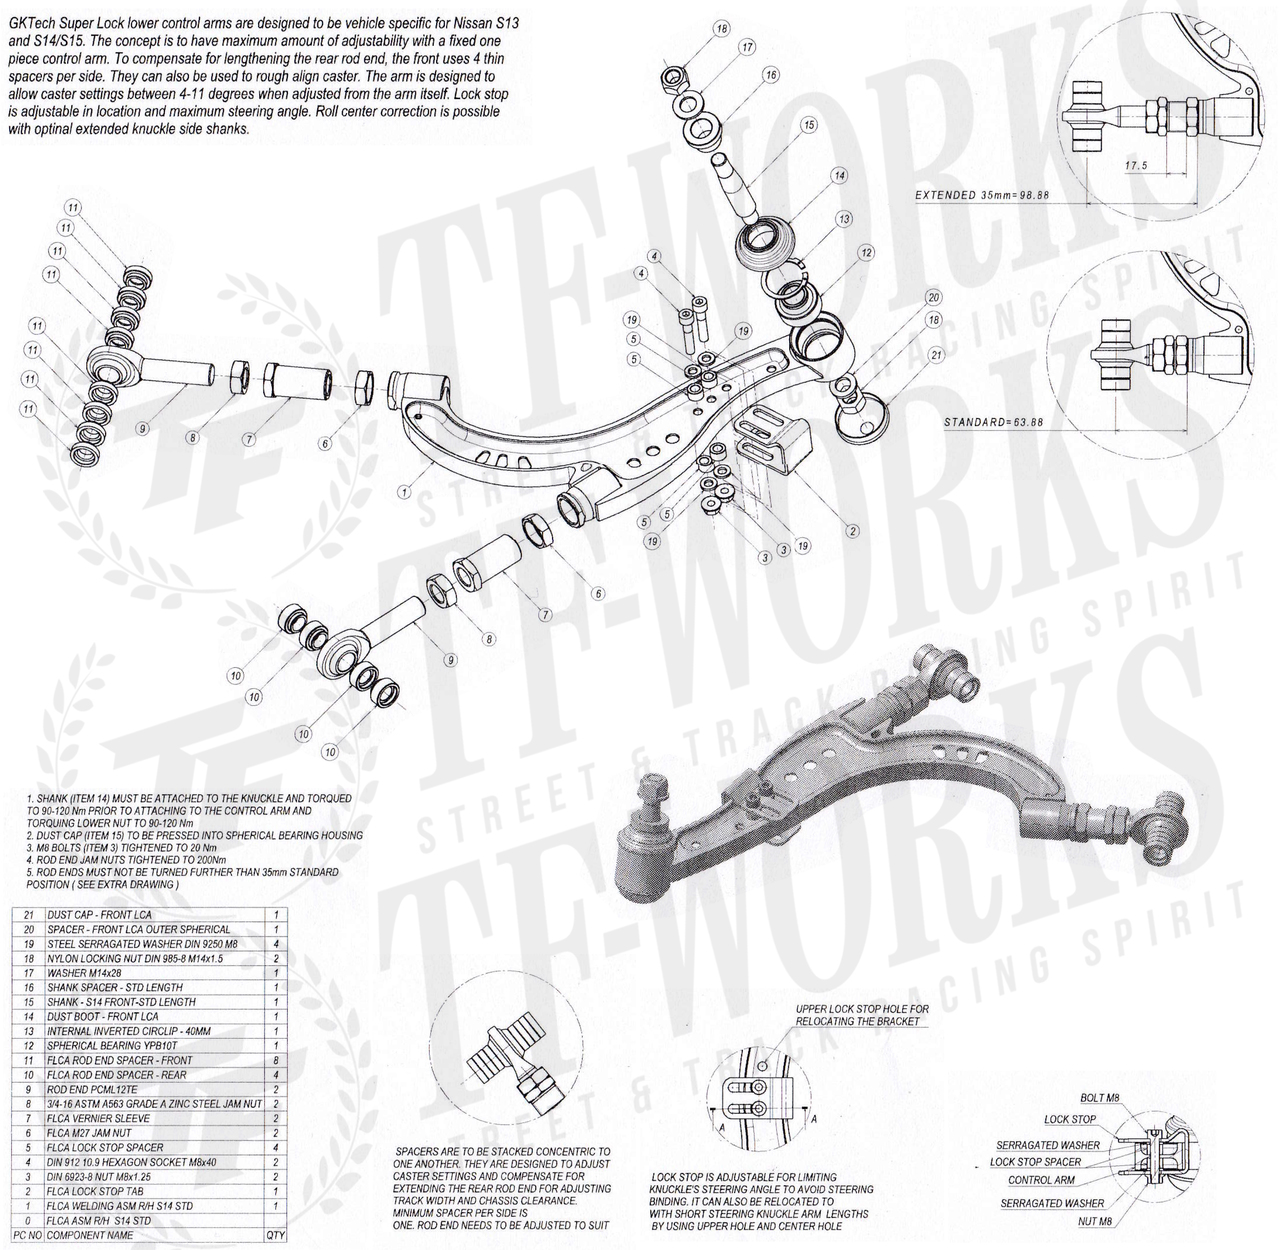 GKtech Super Lock Front Lower Control Arms - S13 / S14 / S15 / R32